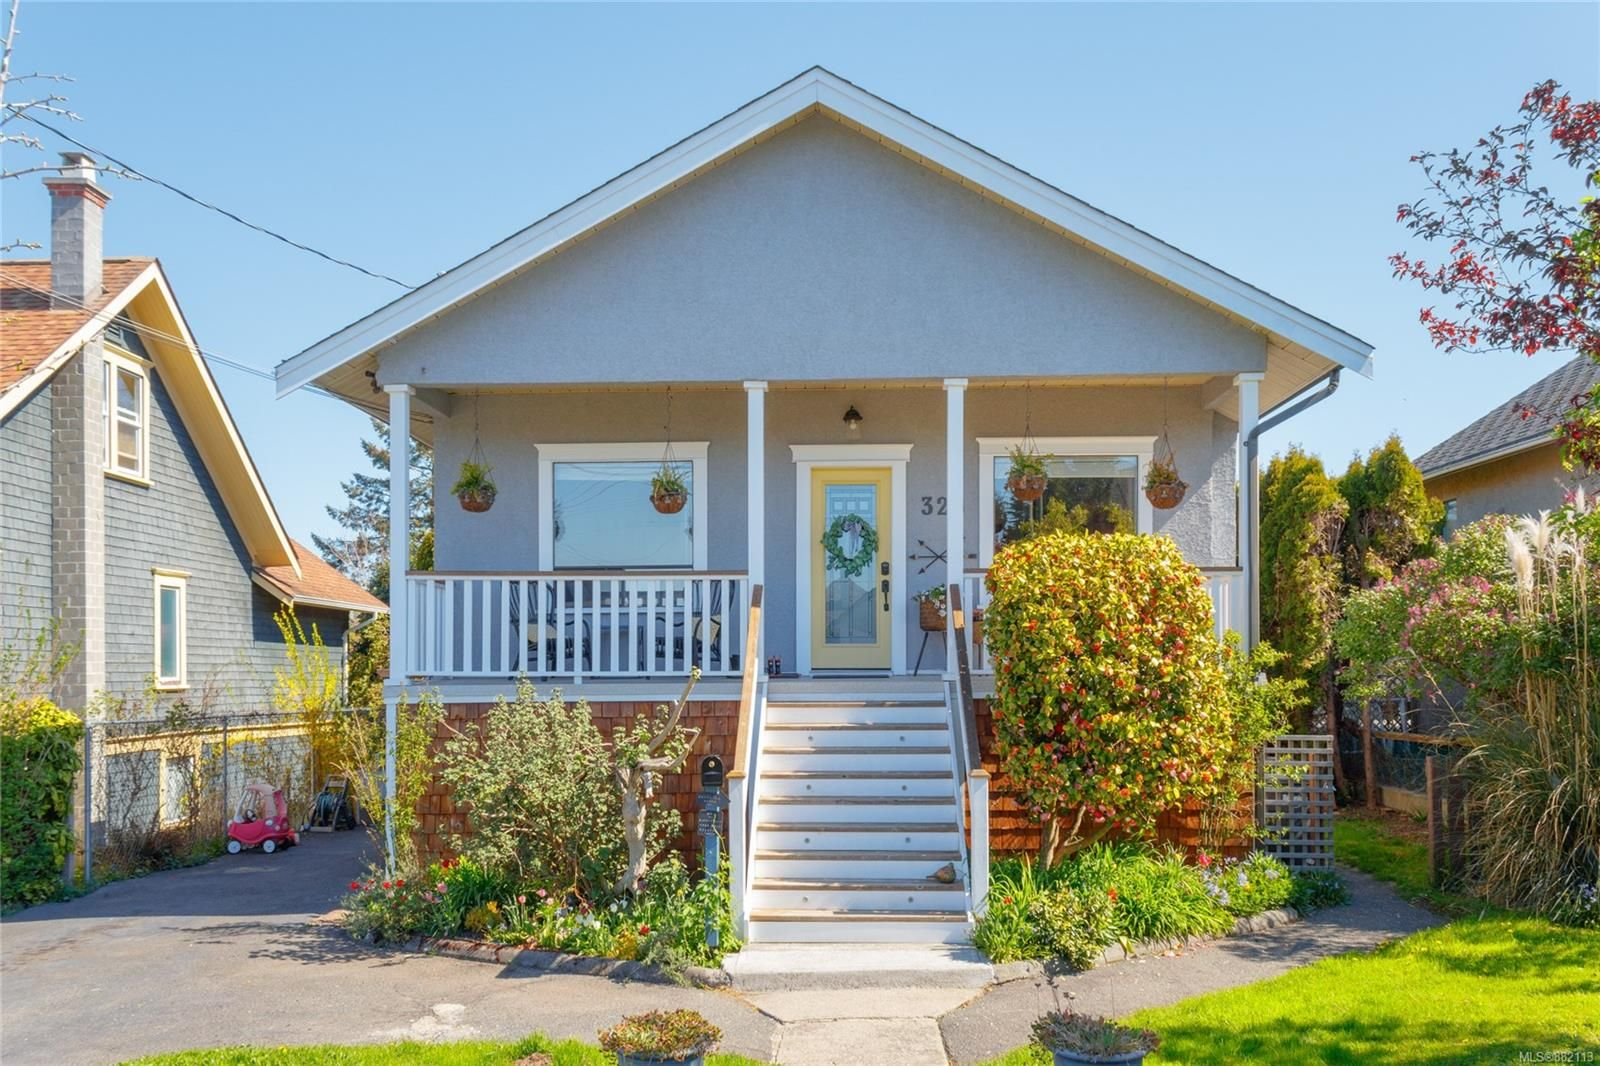 Main Photo: 326 Obed Ave in : SW Gorge House for sale (Saanich West)  : MLS®# 882113